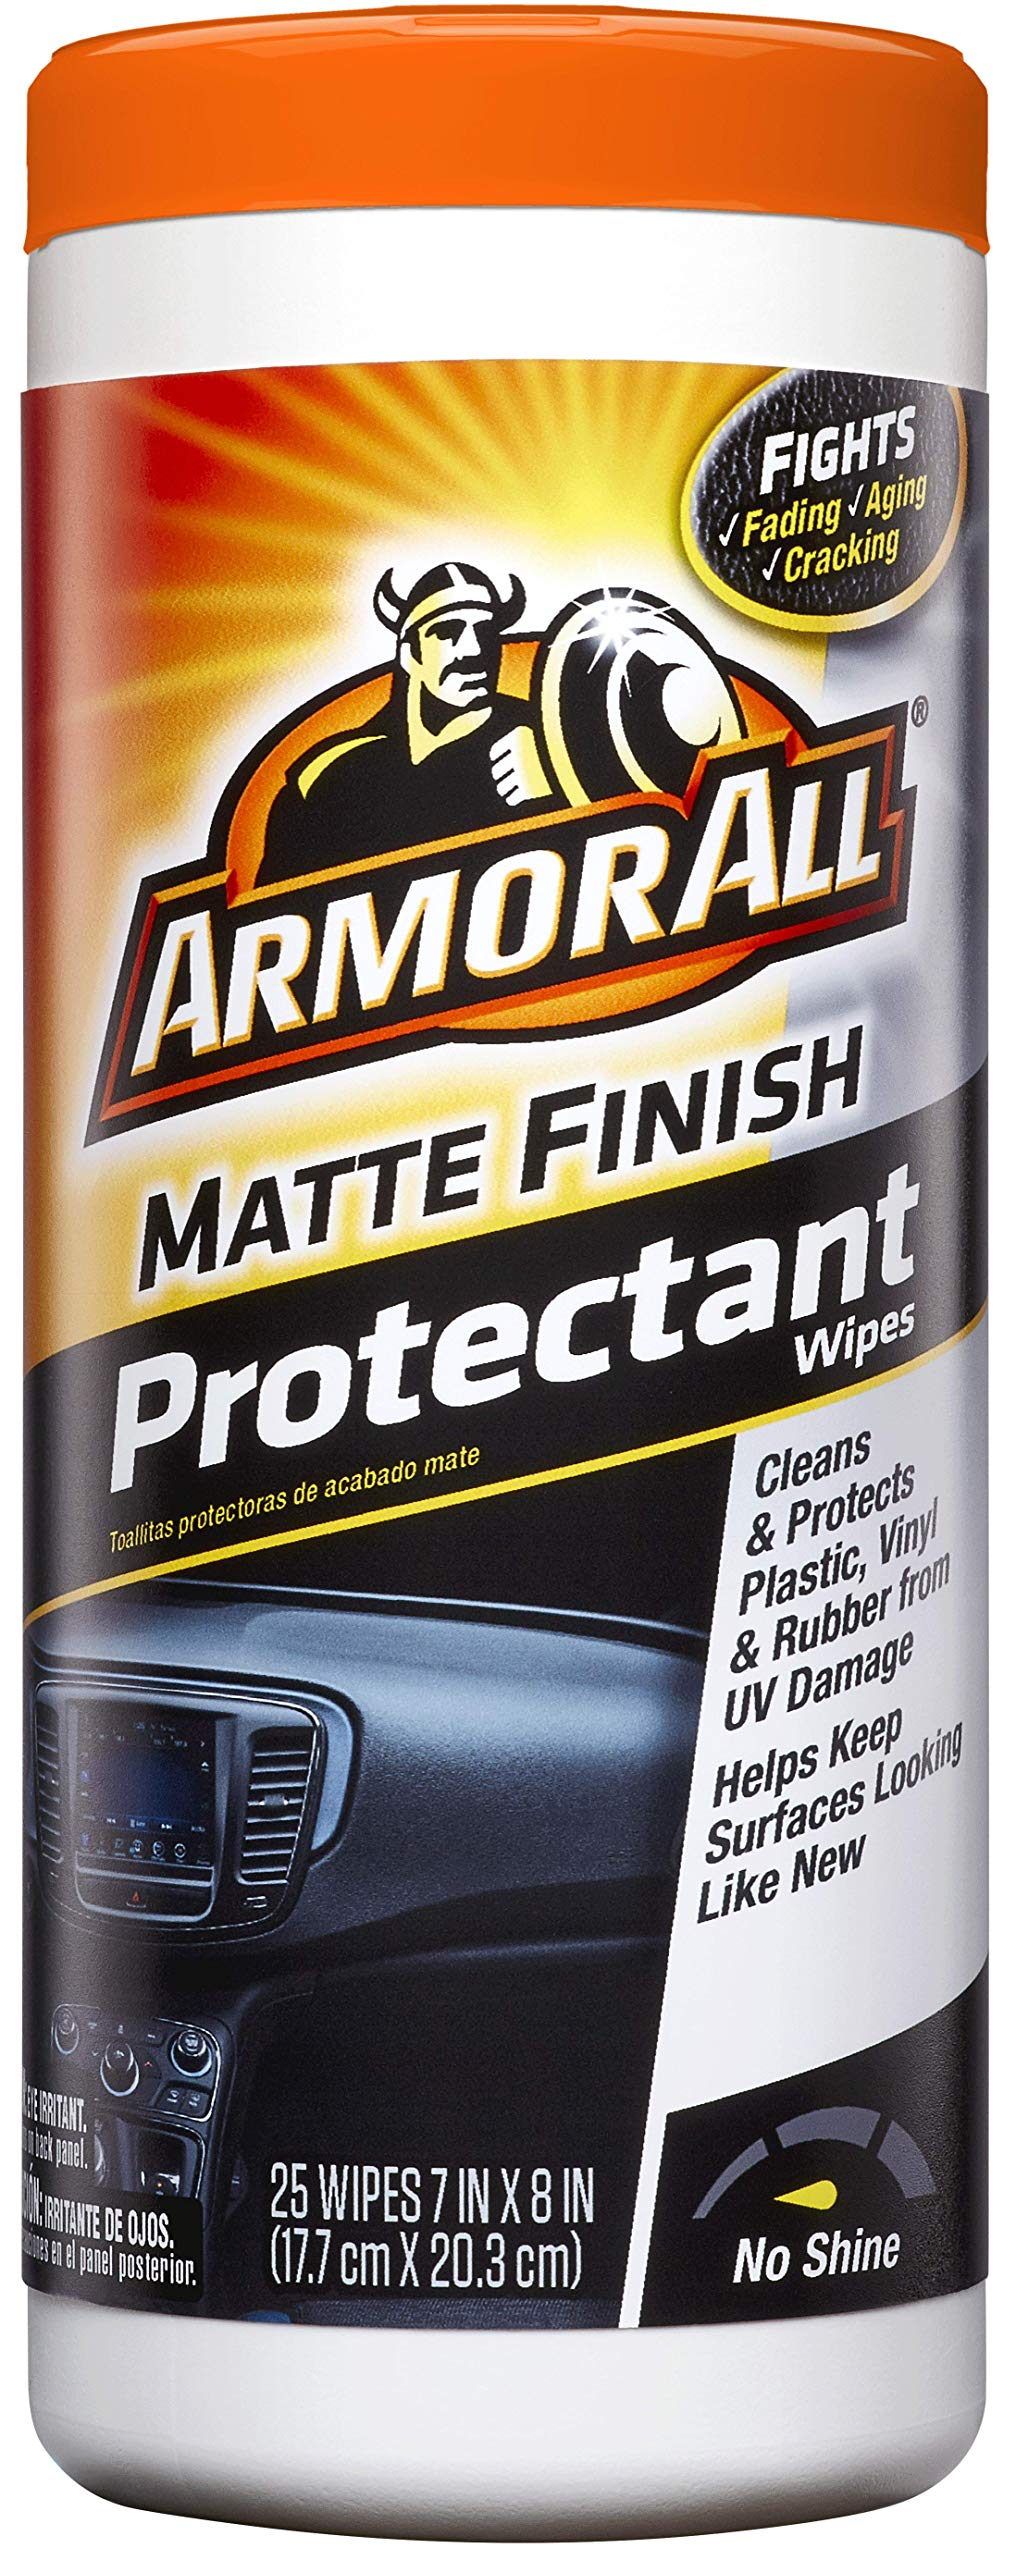 Armor All Matte Finish Protectant Wipes (25 count) (Case of 6)